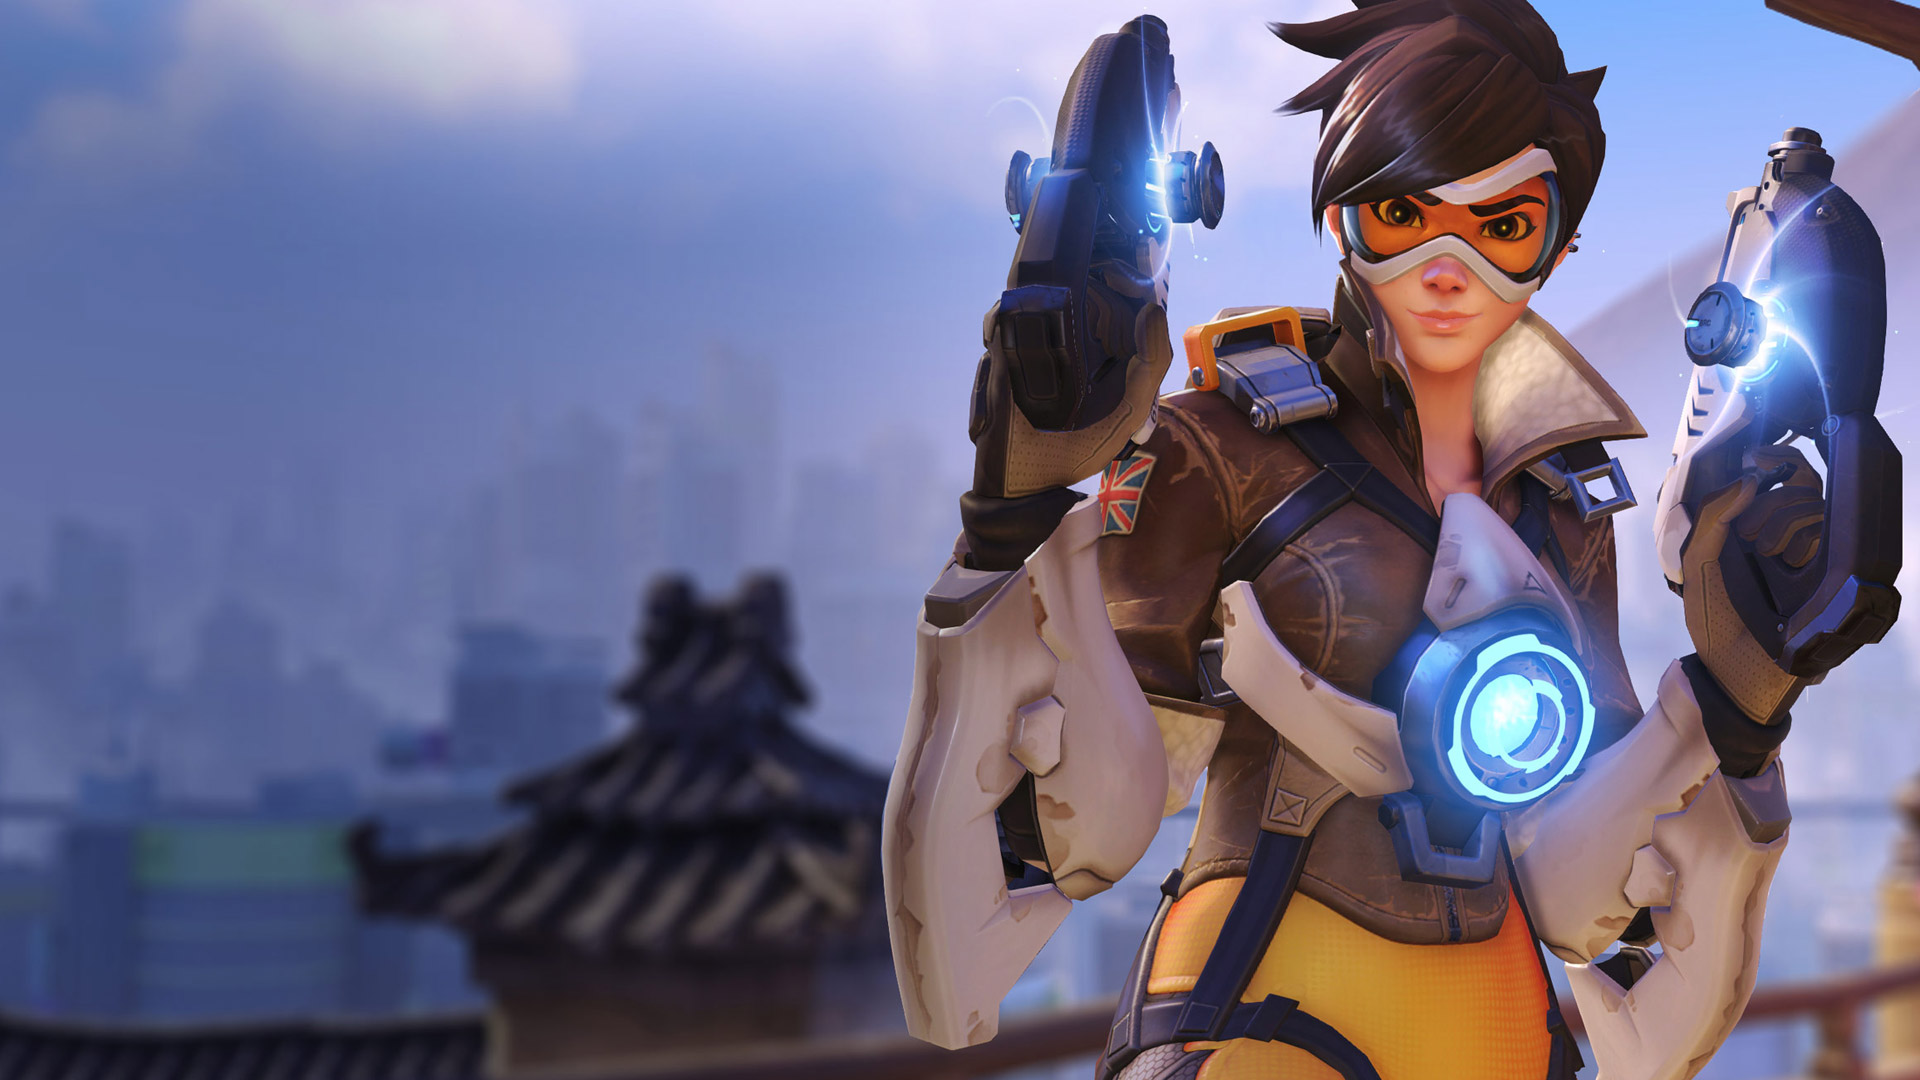 People are doing some awesome things in the Overwatch beta screenshot